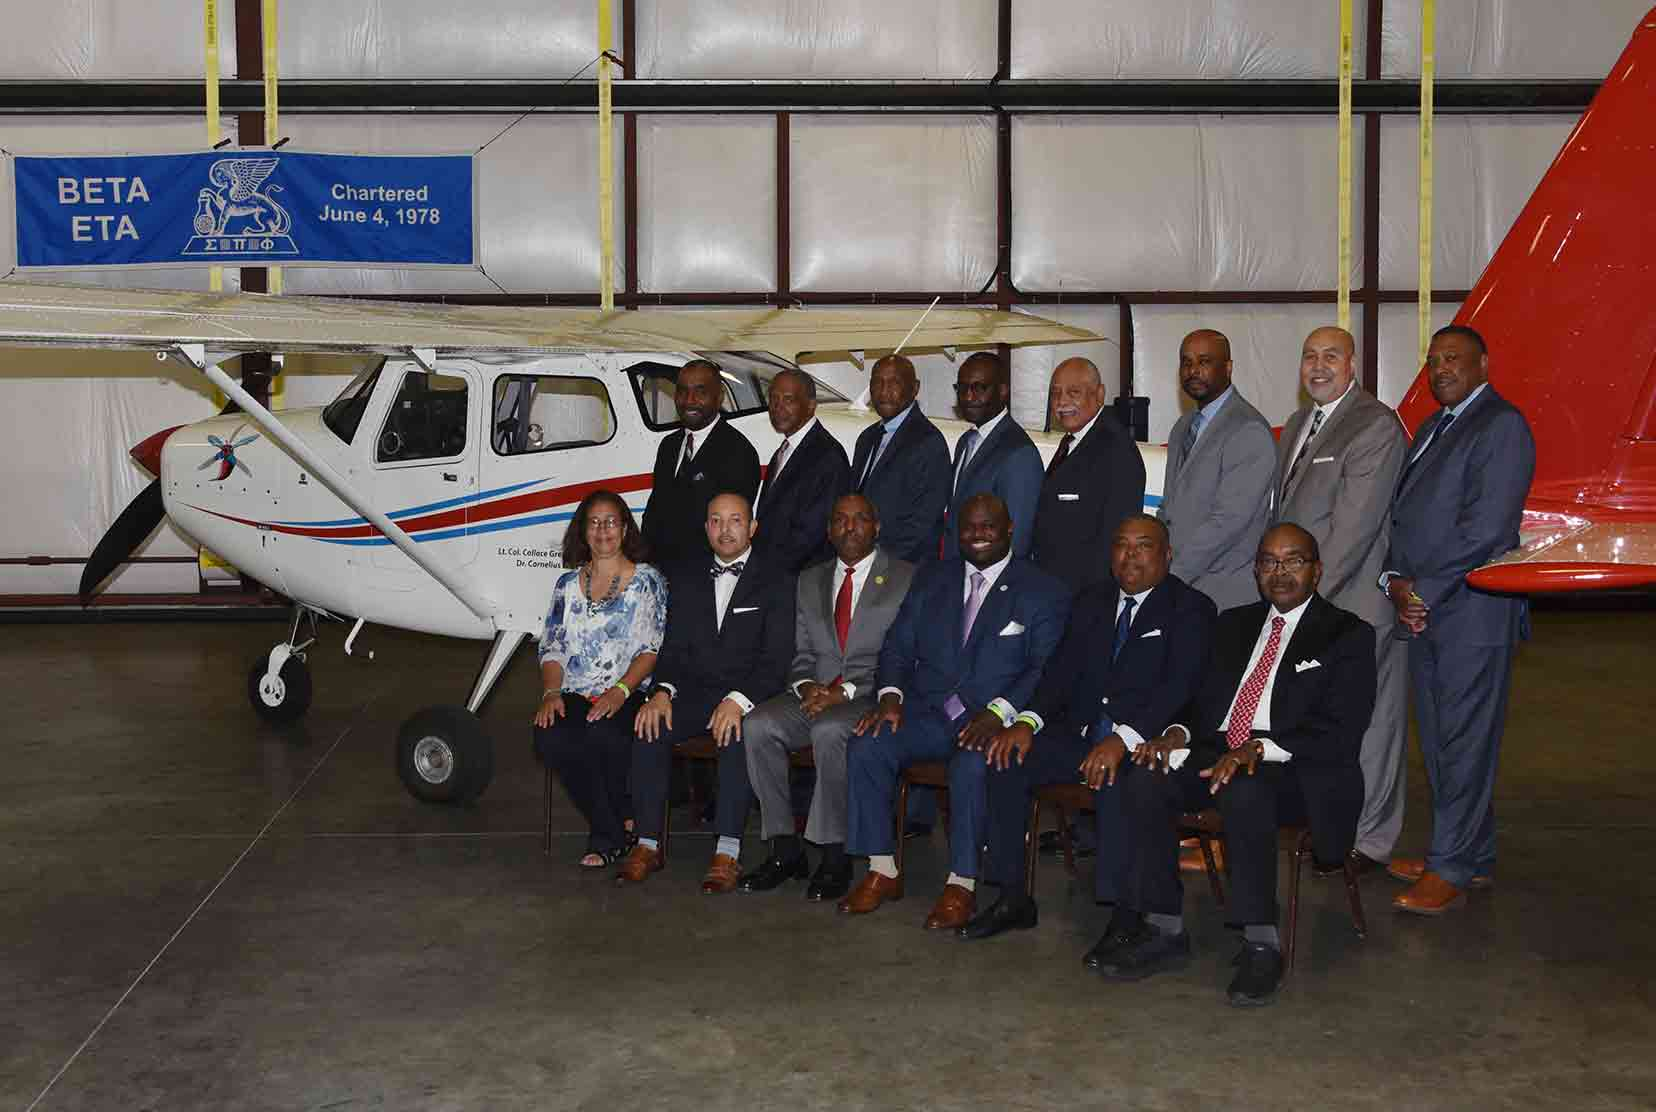 Beta Eta members pose at the Del State plane renamed after two of its members. (L-r, bottom row, Dr. Cornelius Gaither's daughter Carol Clark, Alfred Spencer, Collace Greene Jr., University President Tony Allen, William Allen, Wesley Wilson; (top) Tony Edwards, Dr. Karl Brockenbrough, Dr. Harvey White, Juan Roach, Theodore Greer, Dr. Michael Casson, Vincent Ross, and John Ridgeway.